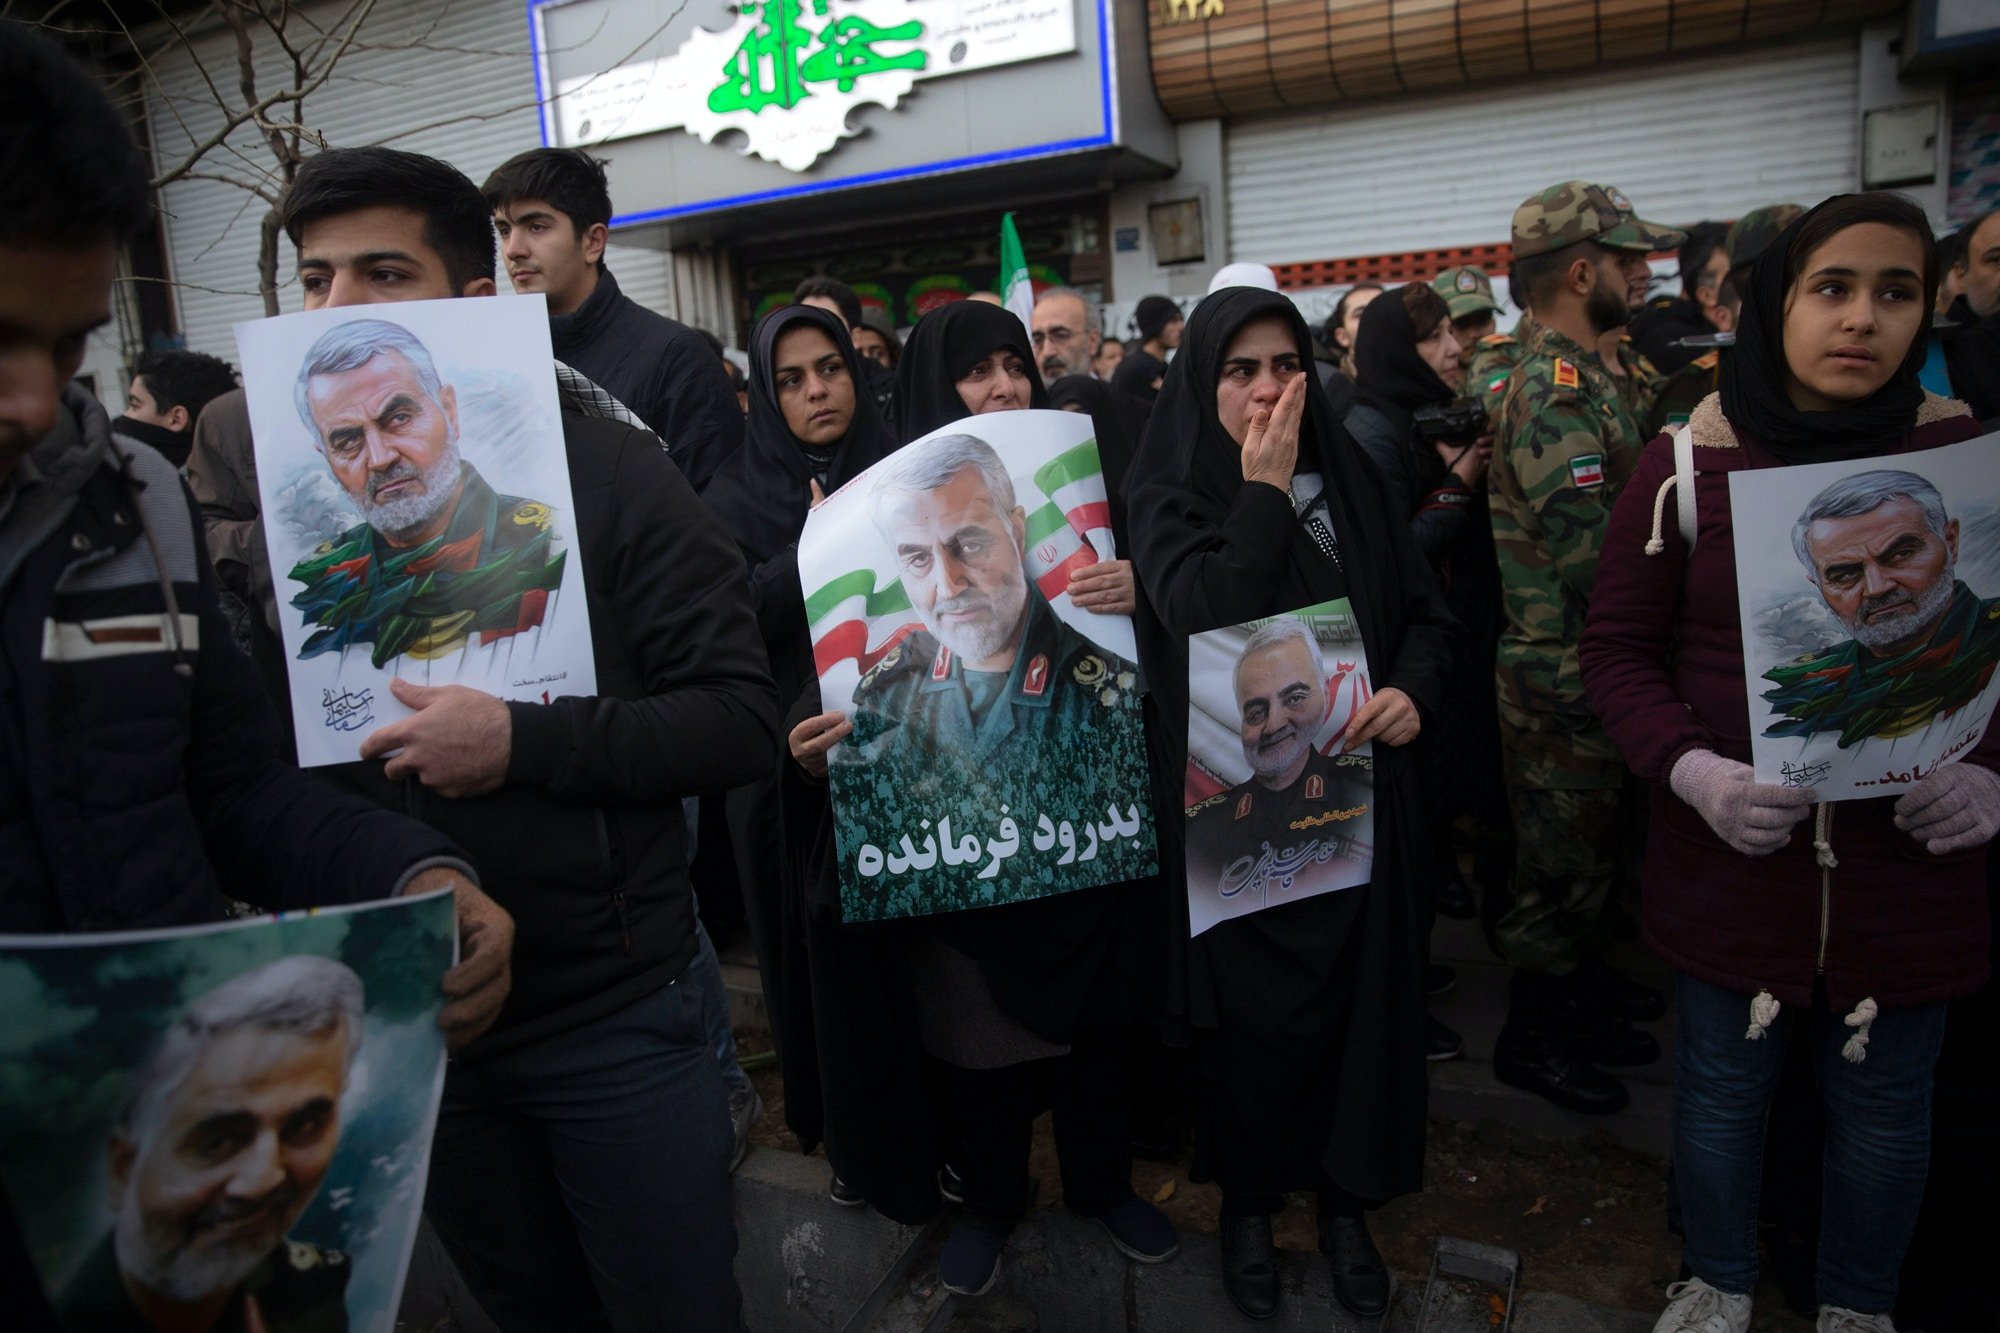 Mourners attend a funeral ceremony of Iranian Major General Qassem Soleimani and others who were killed in Iraq by a U.S. drone strike on January 6, 2020 in Tehran, Iran.